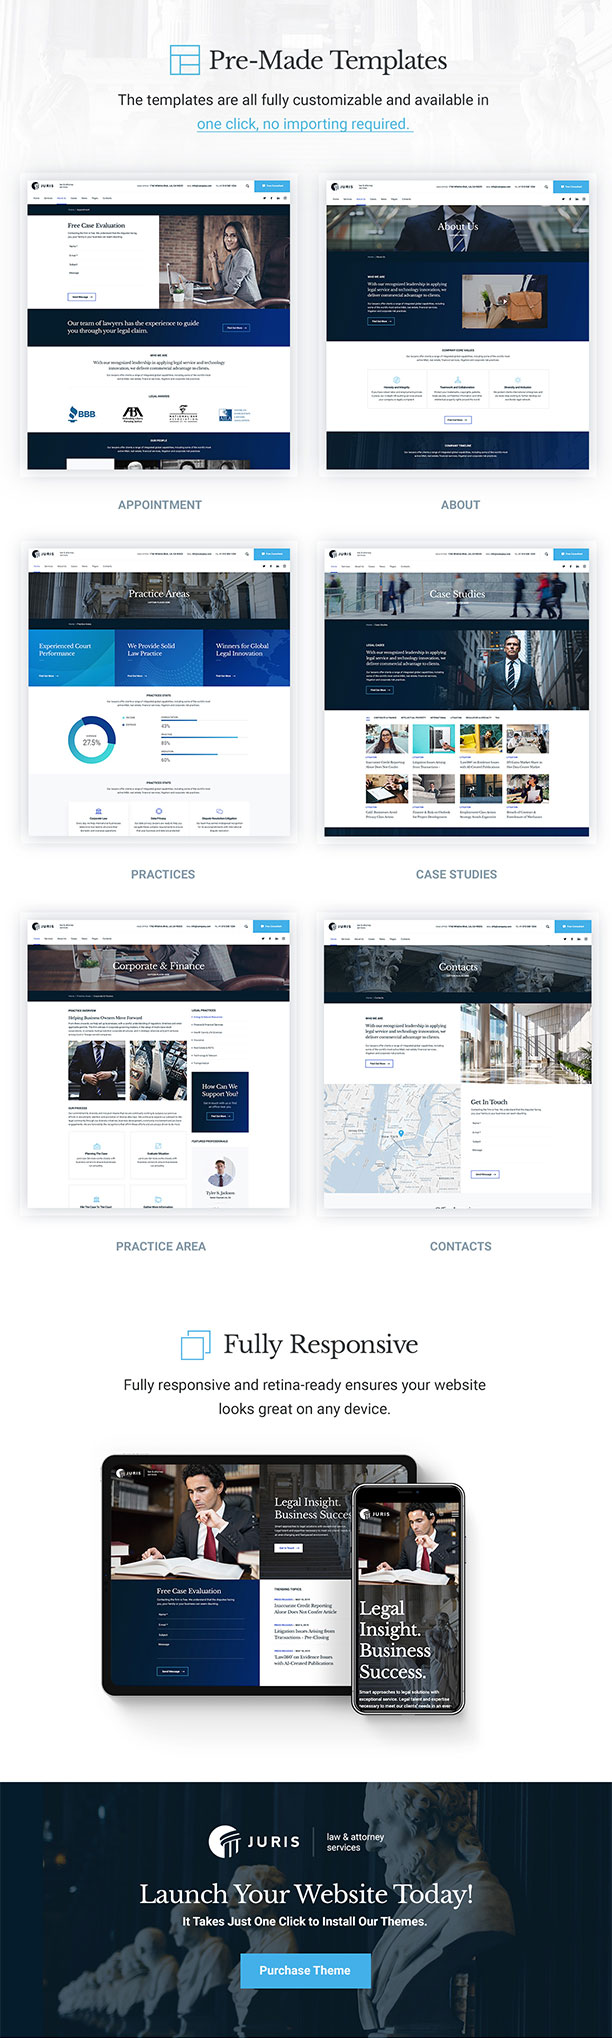 Juris - Law Consulting Services WordPress Theme - 3